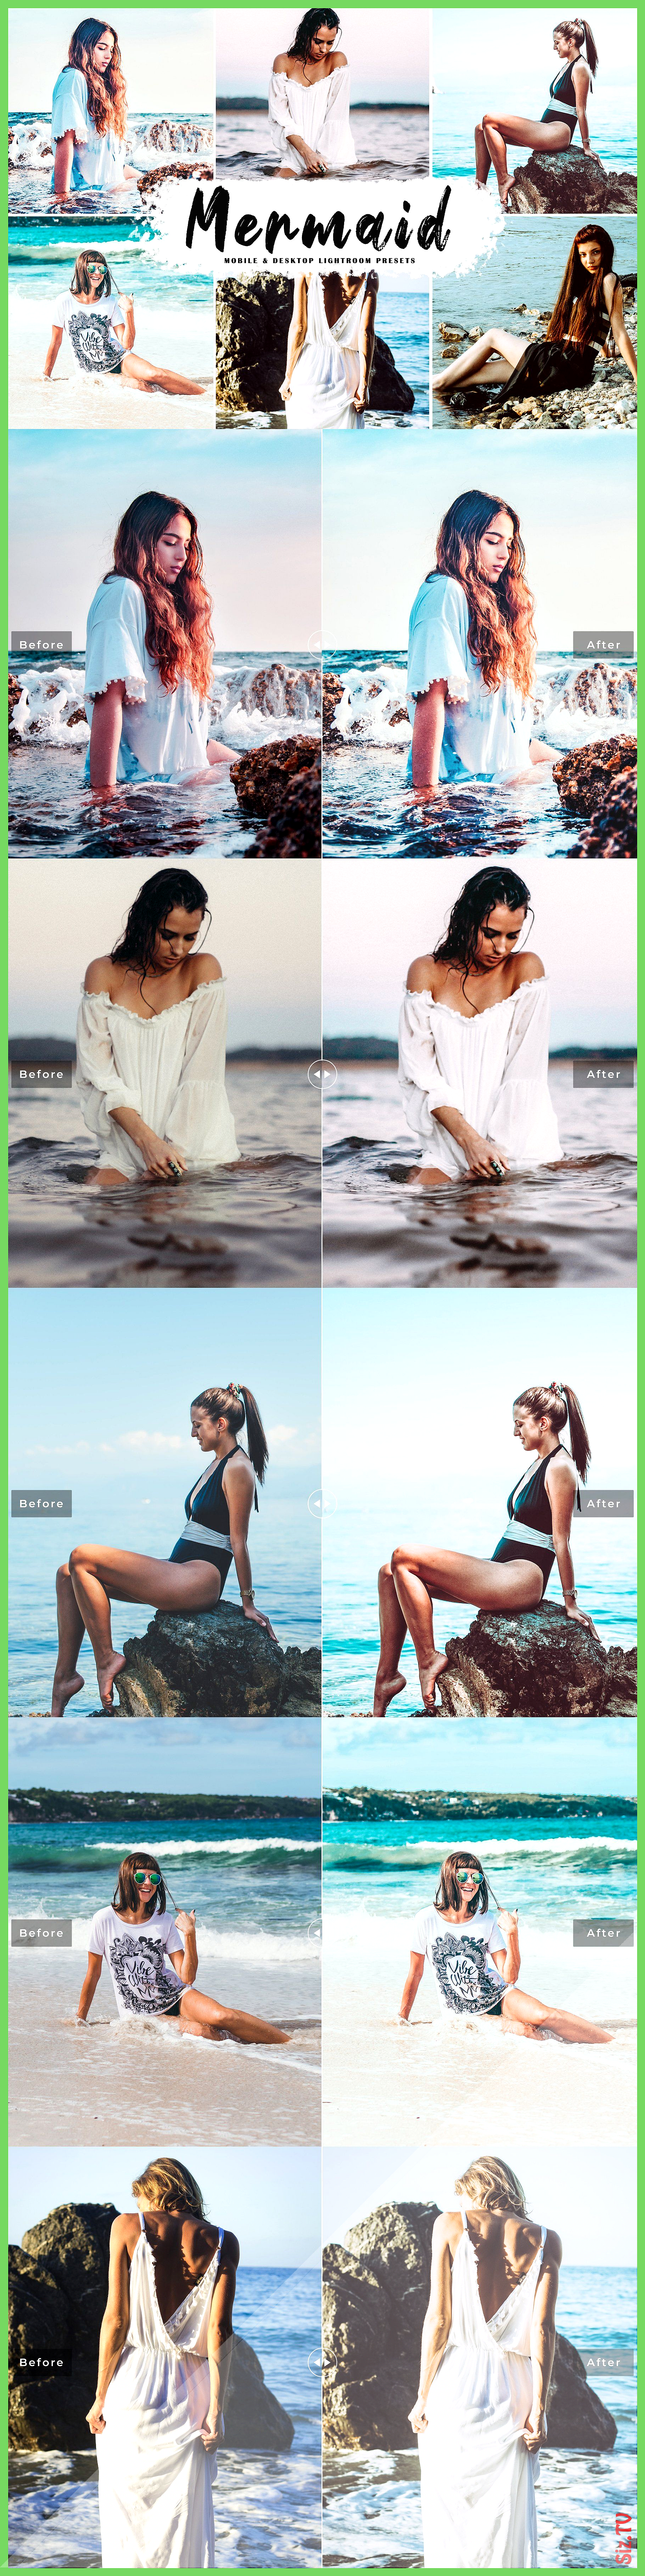 Mermaid Lightroom Presets will add bright soft faded and natural vibrant tones to your photos Made t...